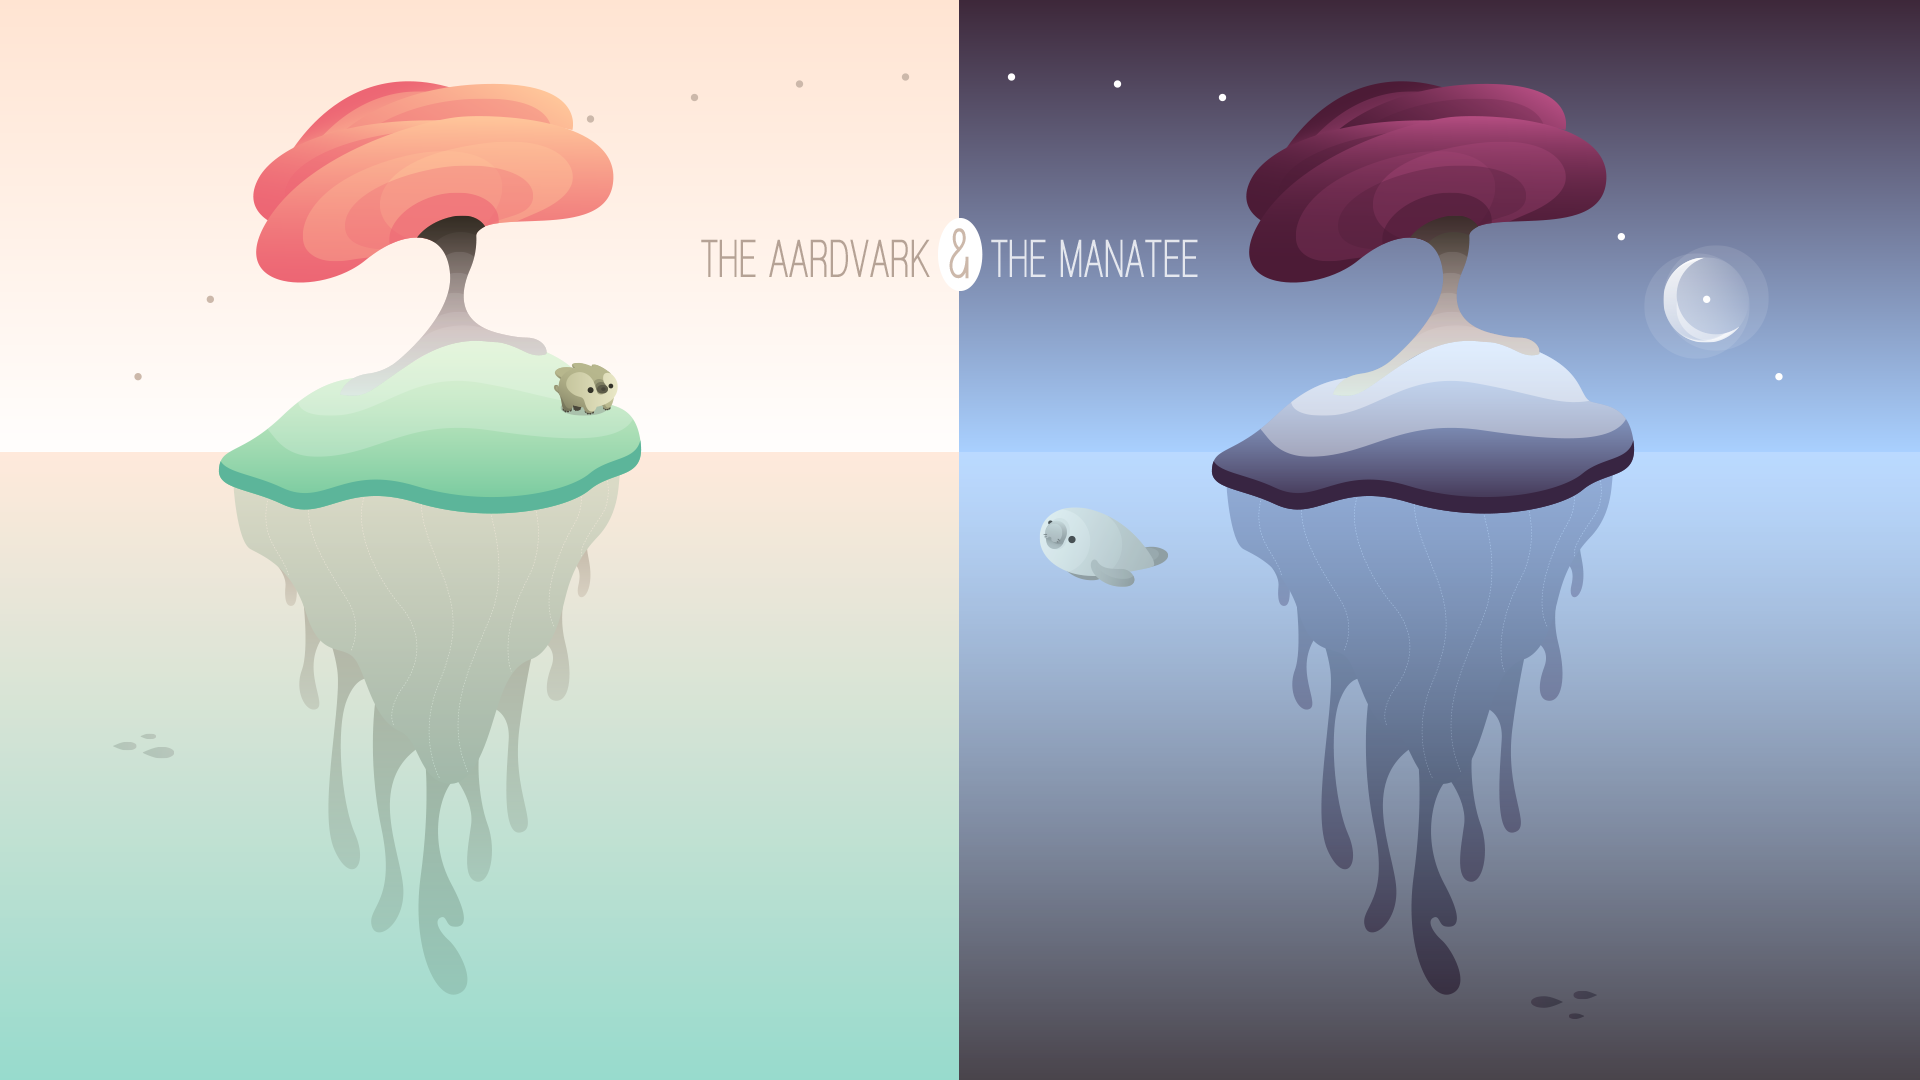 The Aardvark and the Manatee